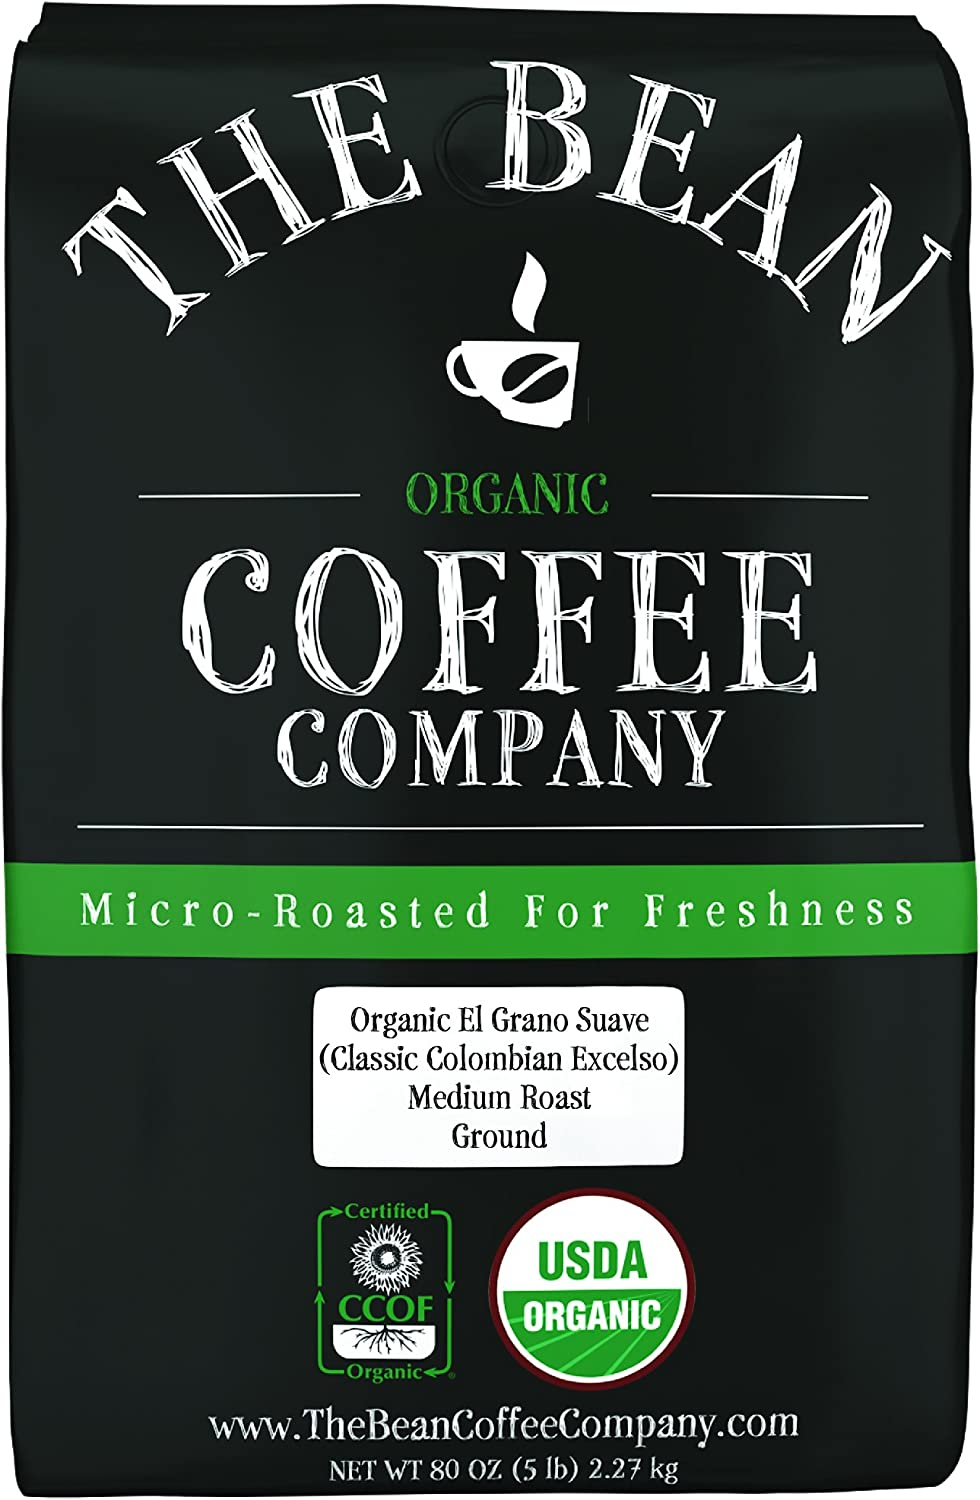 The Bean Coffee Company Organic El Grano Suave (Classic Colombian Excelso), Medium Roast, Ground, 5-Pound Bag